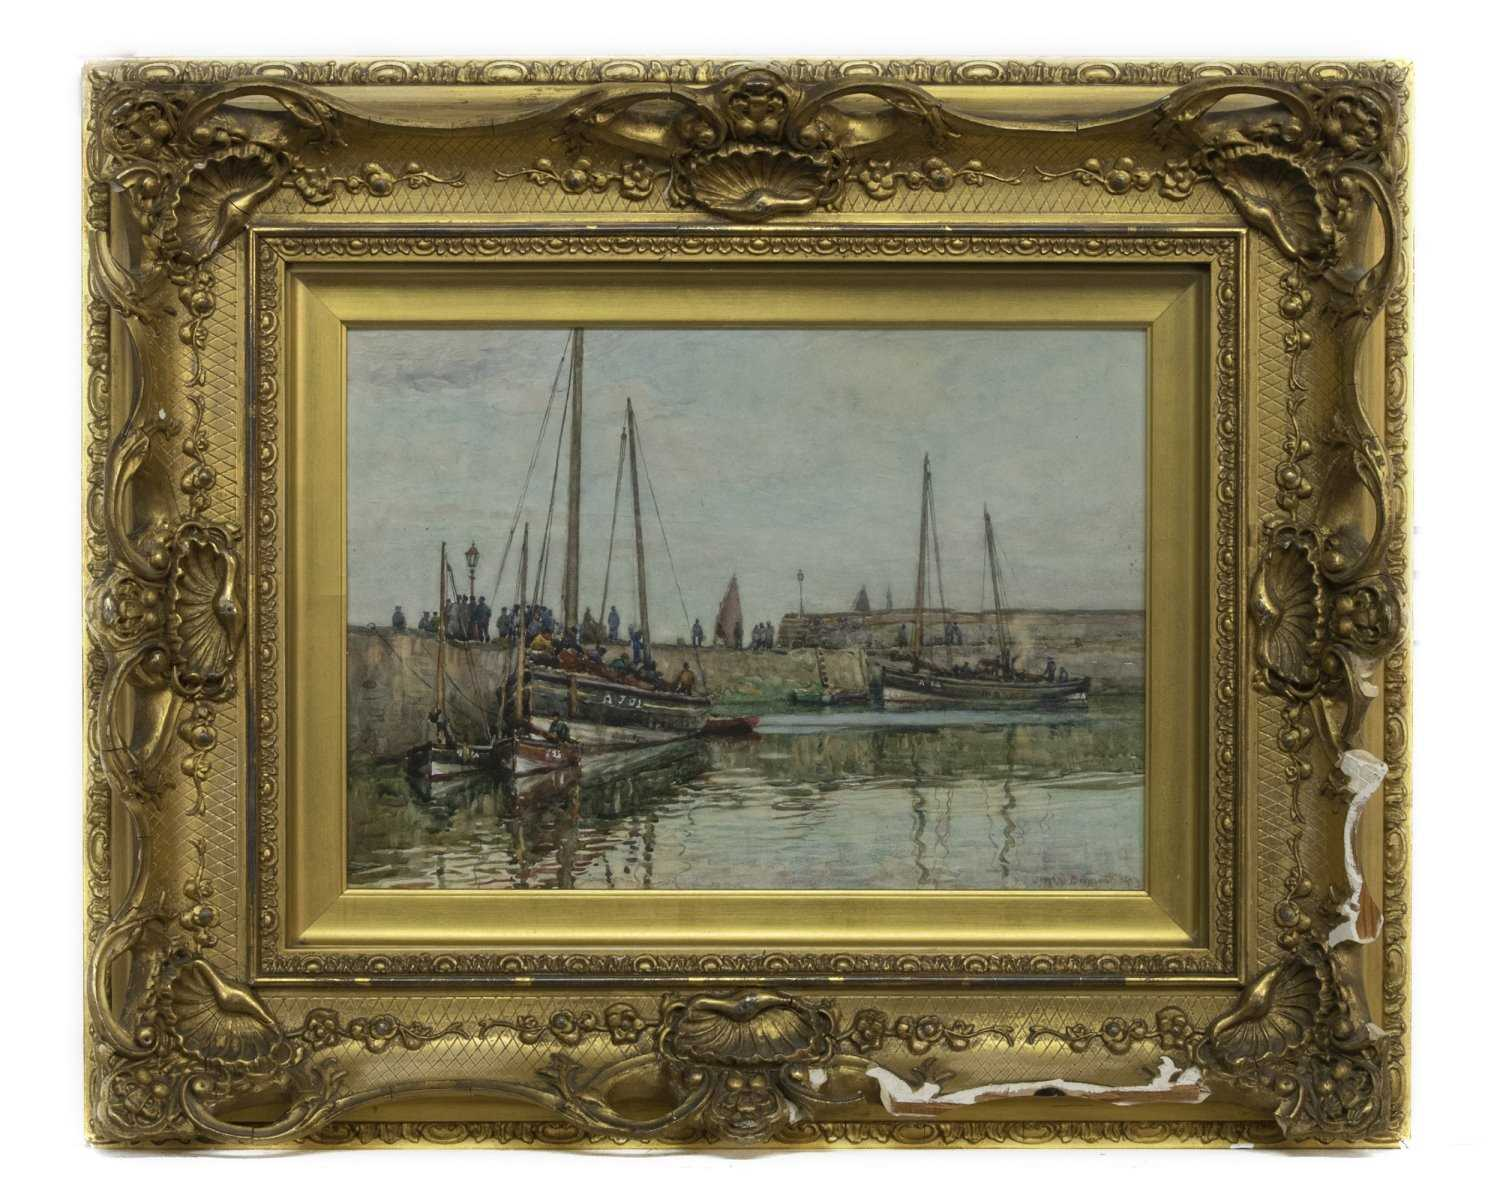 Lot 93 - SAILS AT DOCK, AN OIL